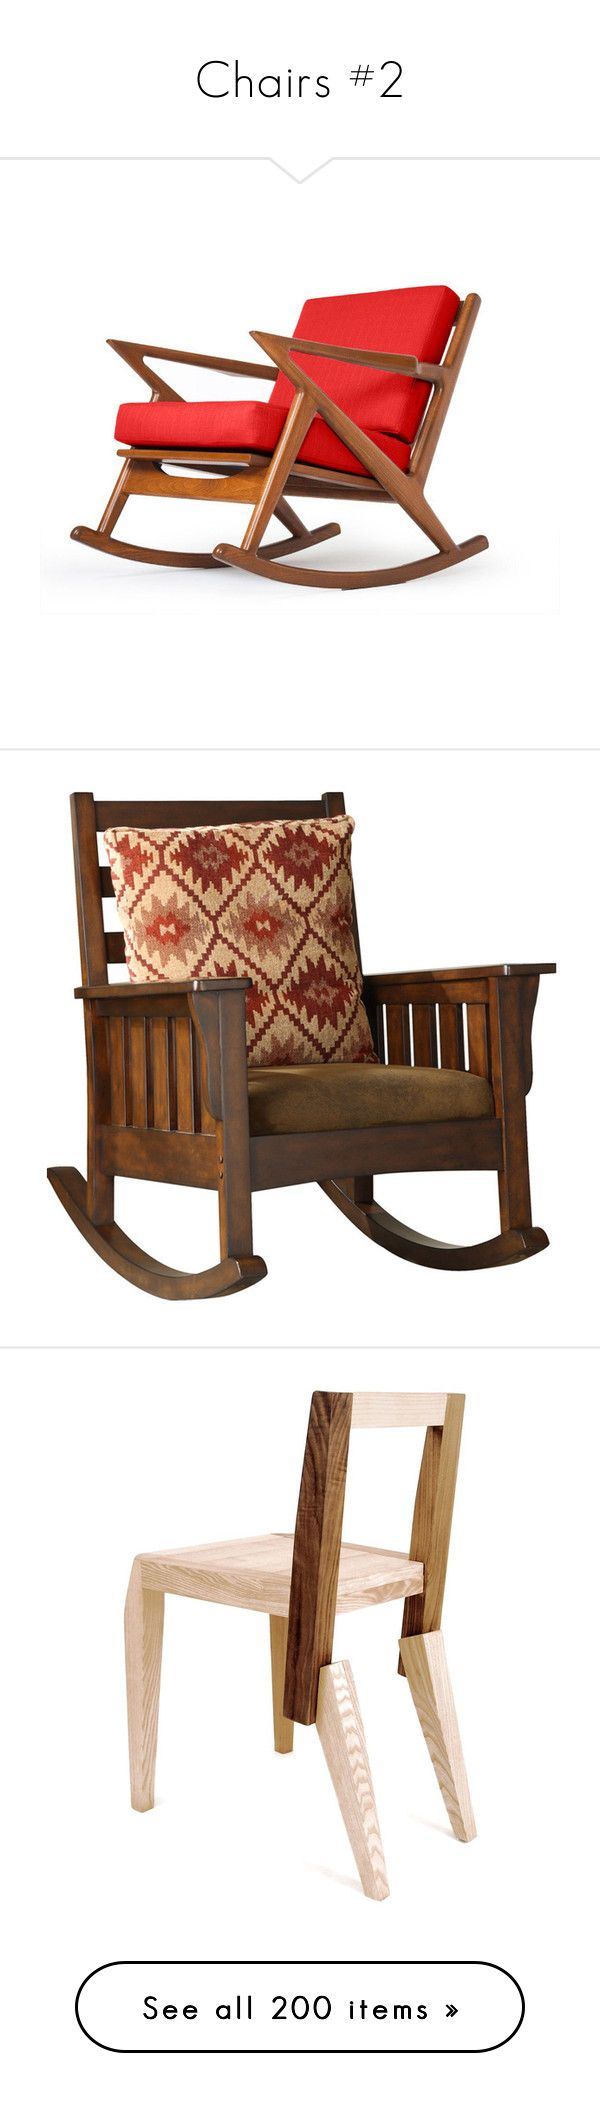 best 20 wooden rocking chairs ideas on pinterest rocking chair cushions childs rocking chair and rocking chair covers